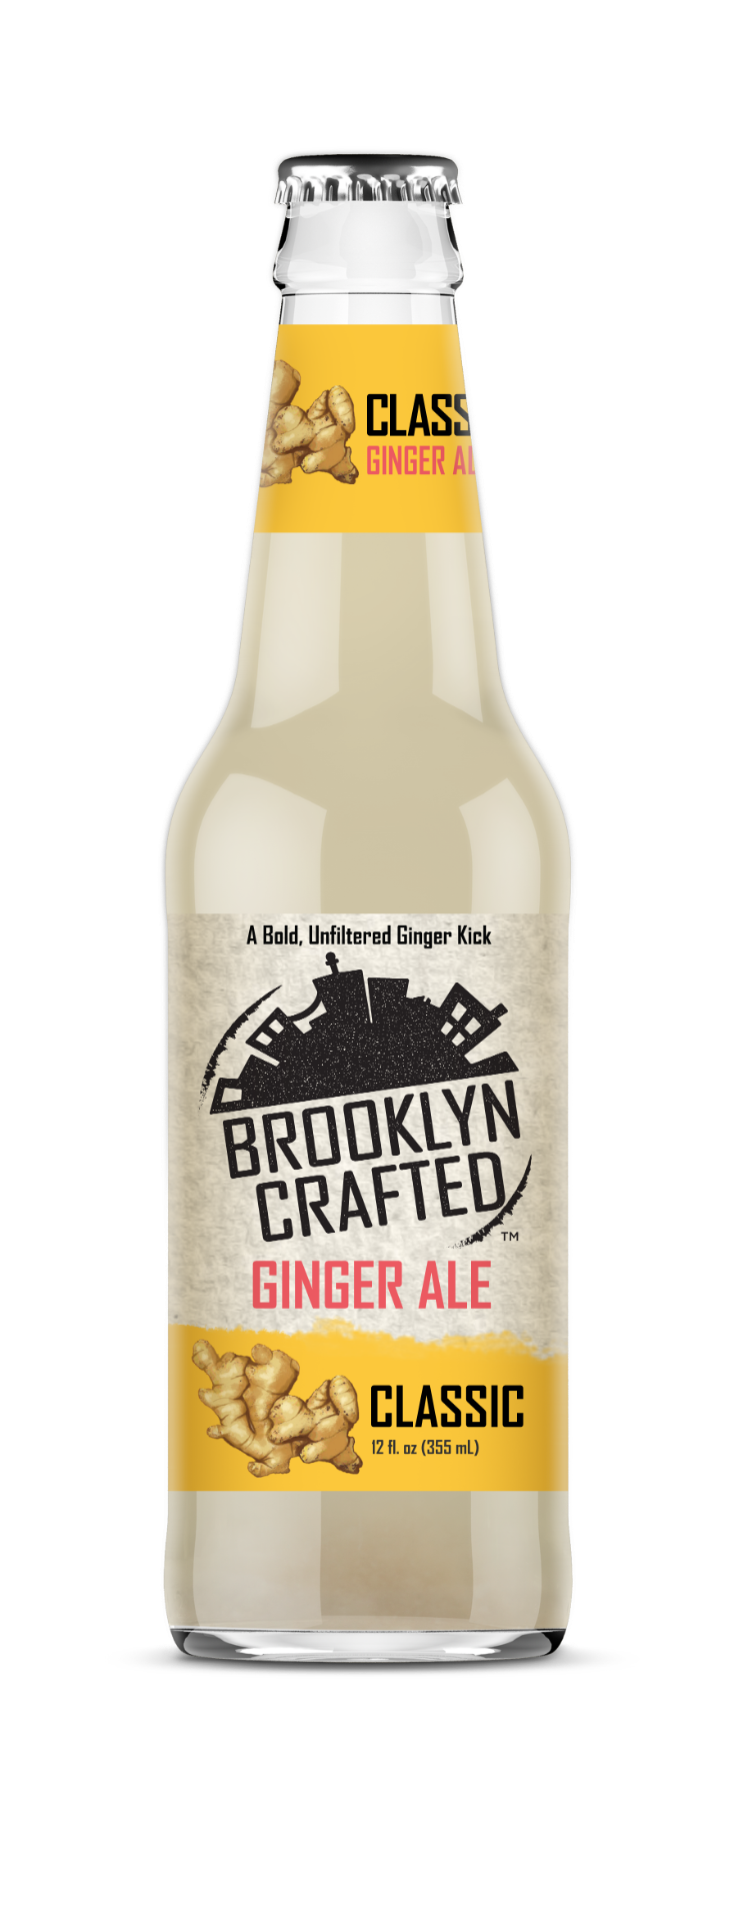 BROOKLYN CRAFTED Classic ginger ale Image